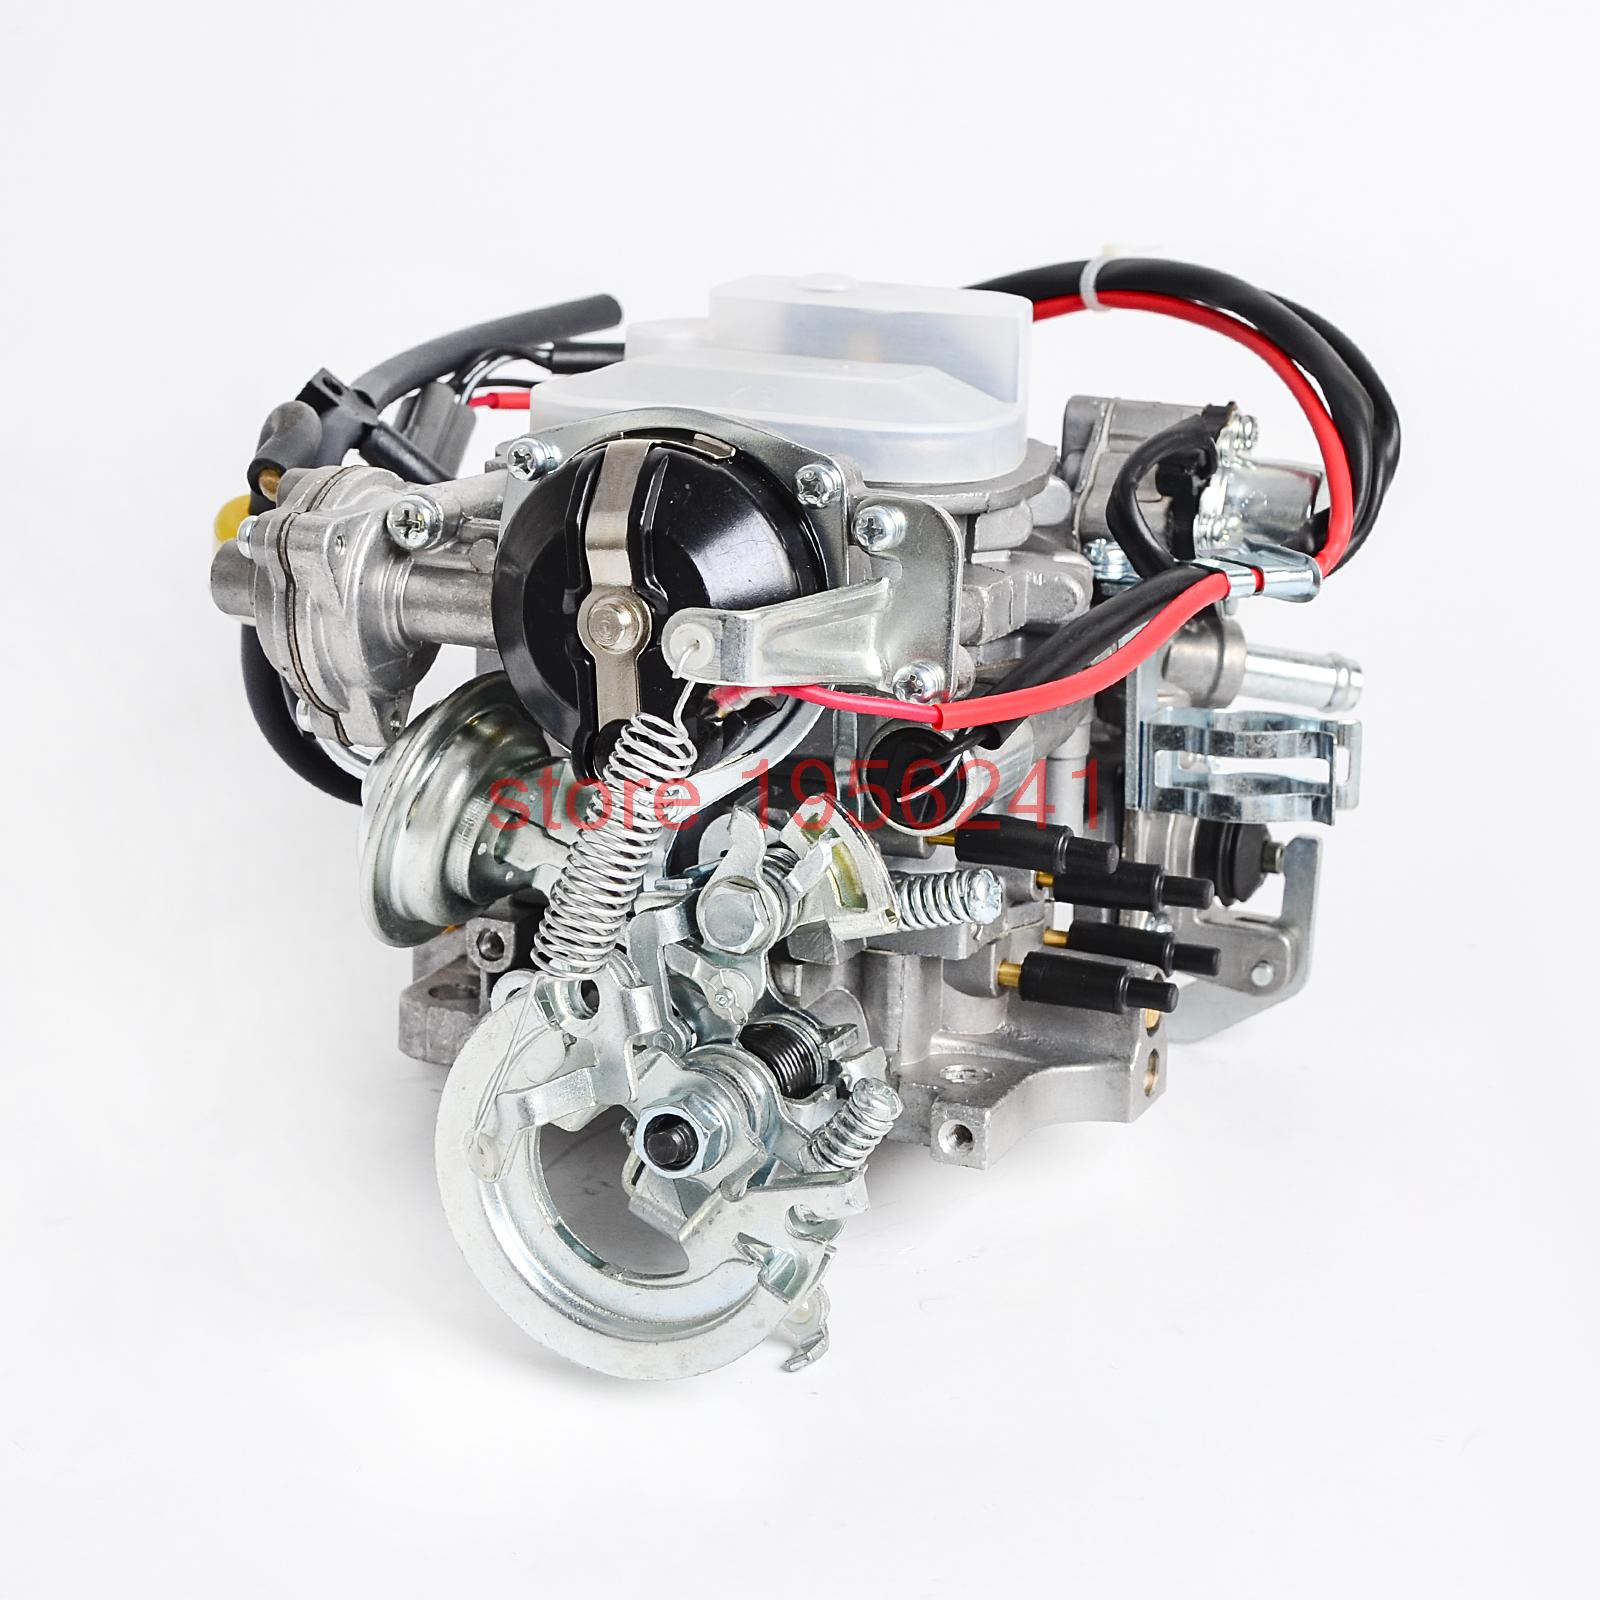 New High Quality CARBIE CARB Carby Carburetor for TOYOTA 4 RUNNER HILUX 22R Engine Part Number: 21100-35530 21100-35520 carburetor carb engine for dodge plymouth 318 engine carter c2 bbd barrel new arrival